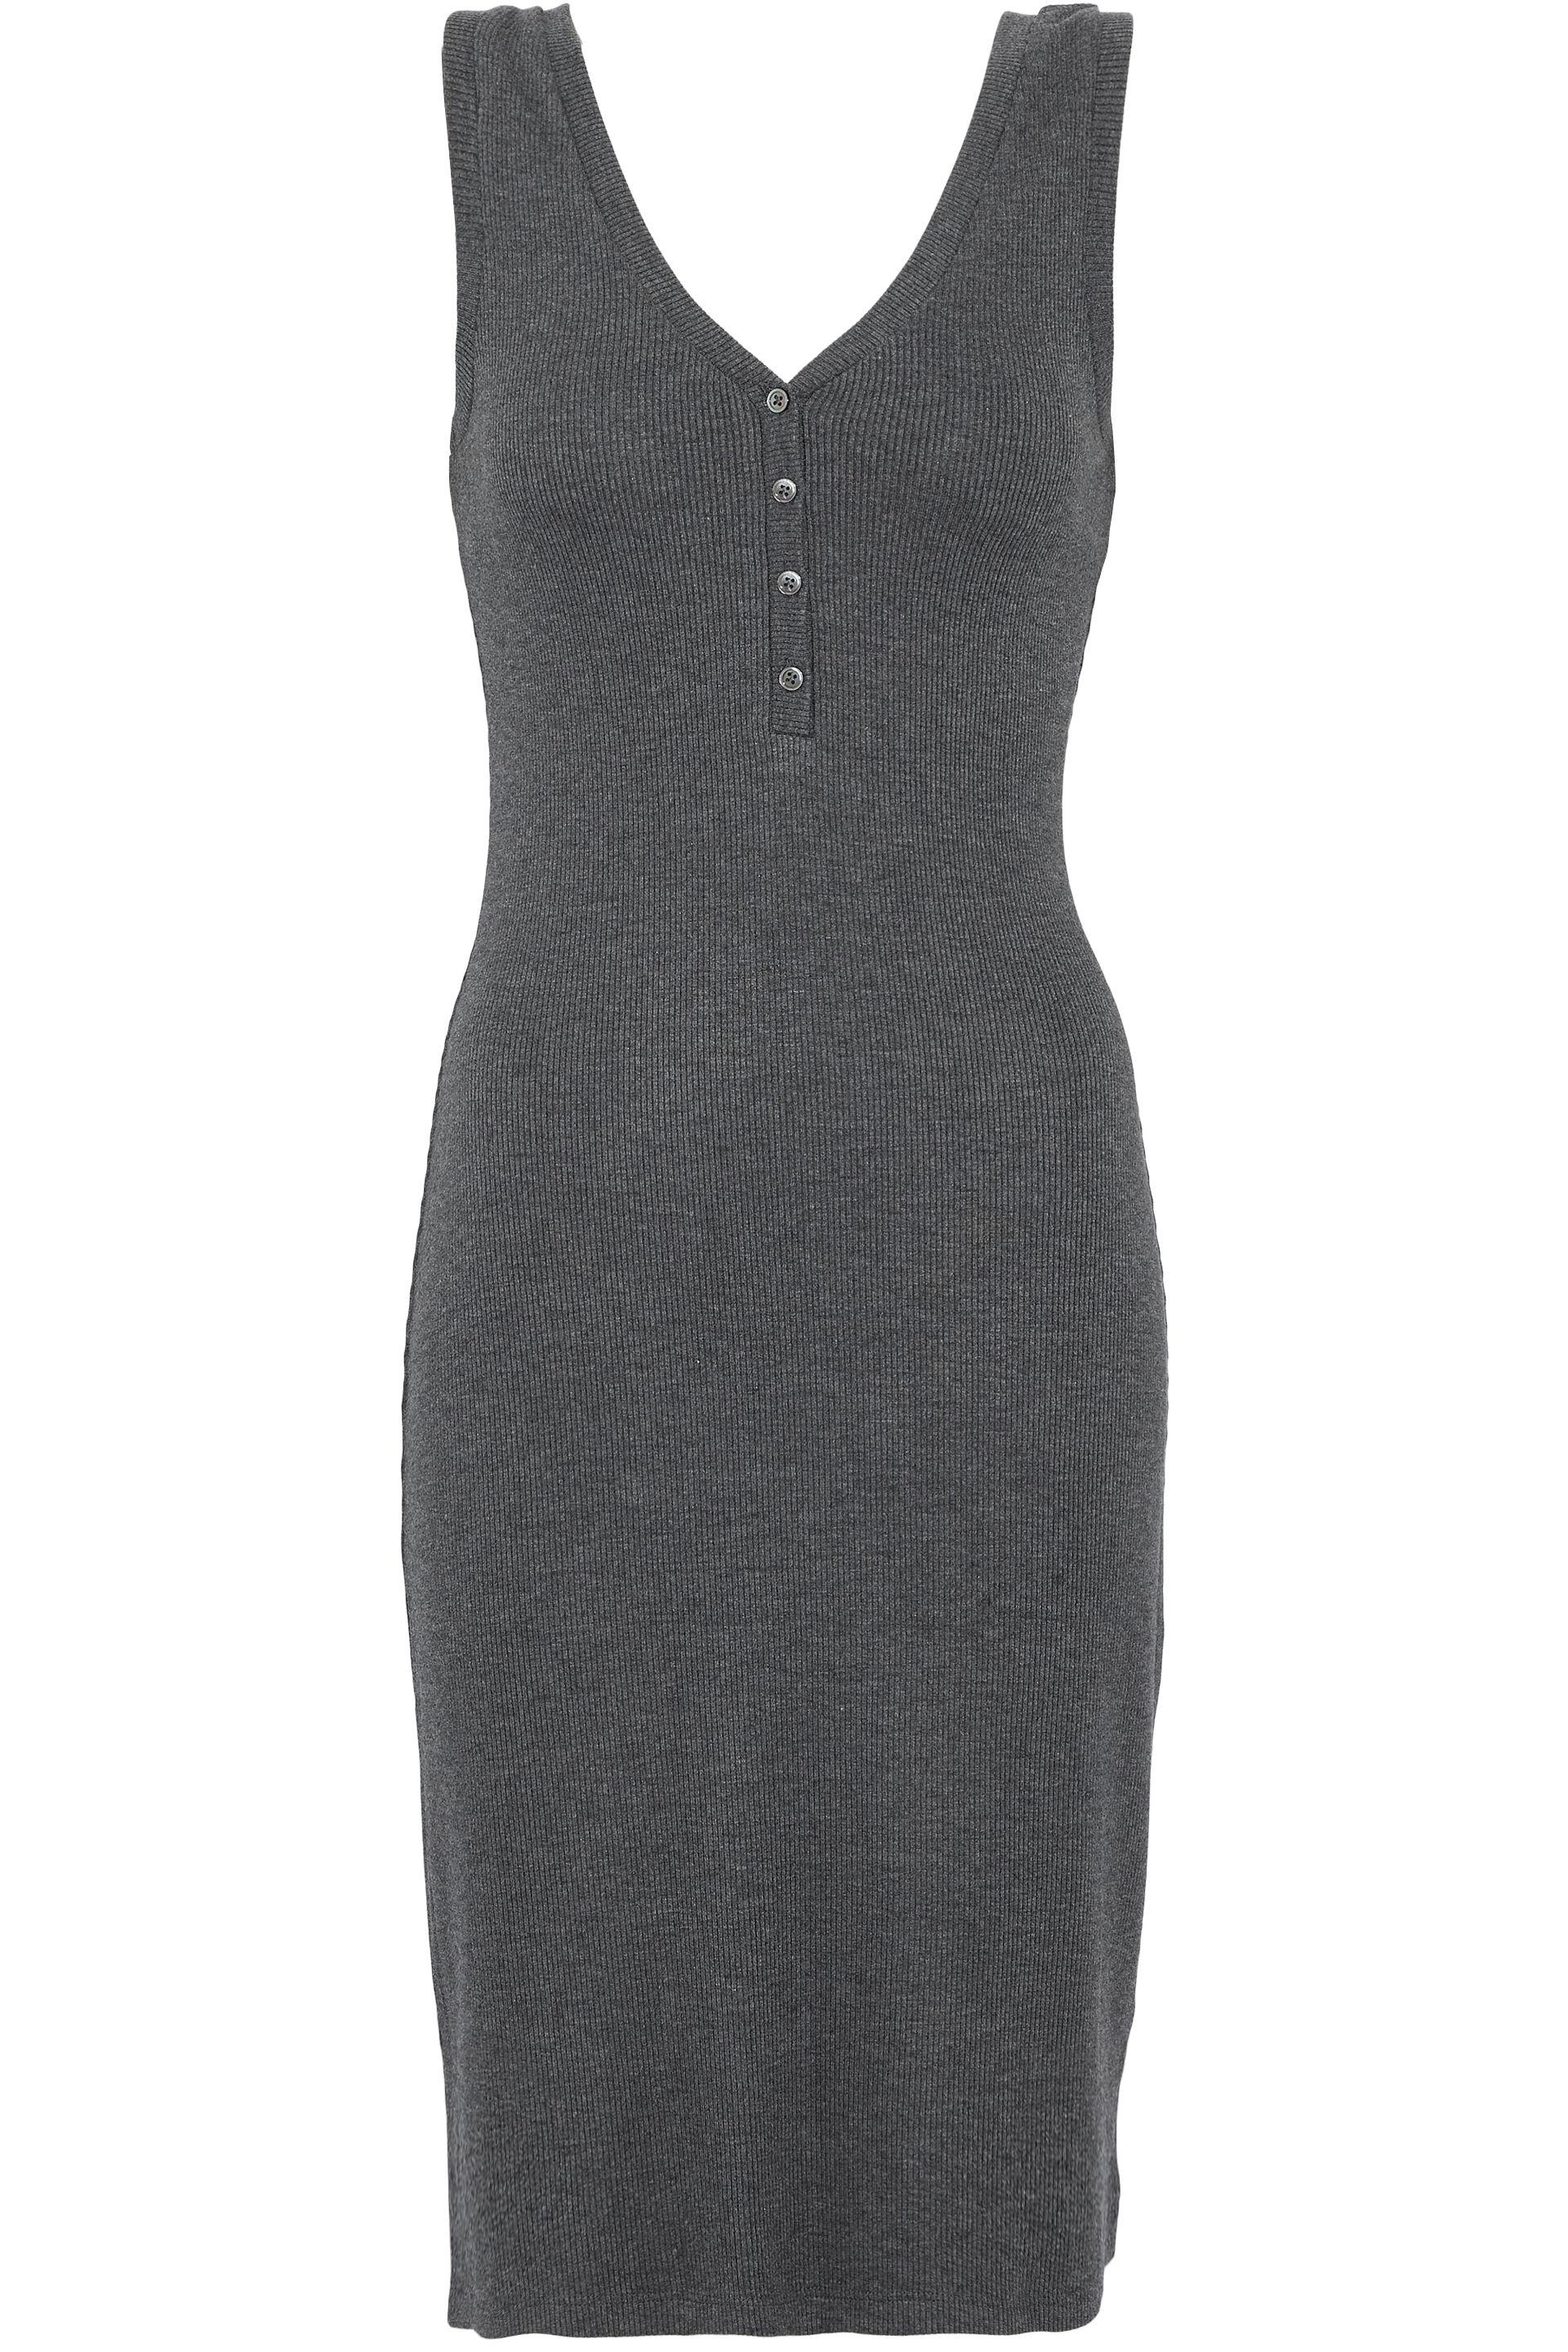 Shopping Online With Mastercard Lagence Woman Ribbed-knit Dress Black Size M L'agence Hot Sale Pay With Visa Geniue Stockist Cheap Online XzHIsVQ